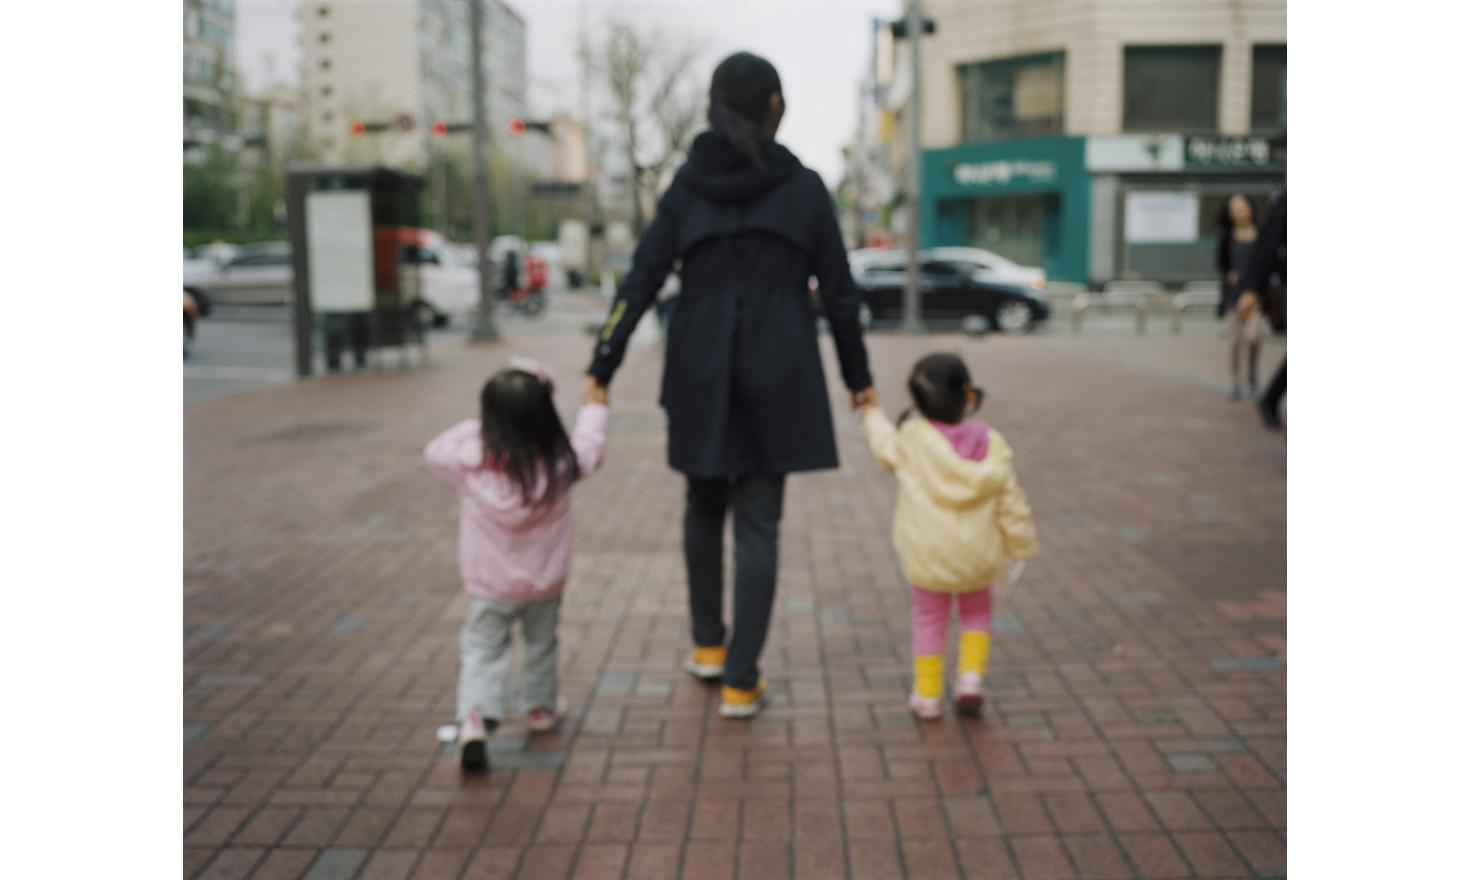 Street of Seoul, South Korea 4/27/2013. Fantasies of finding my birth family fading away